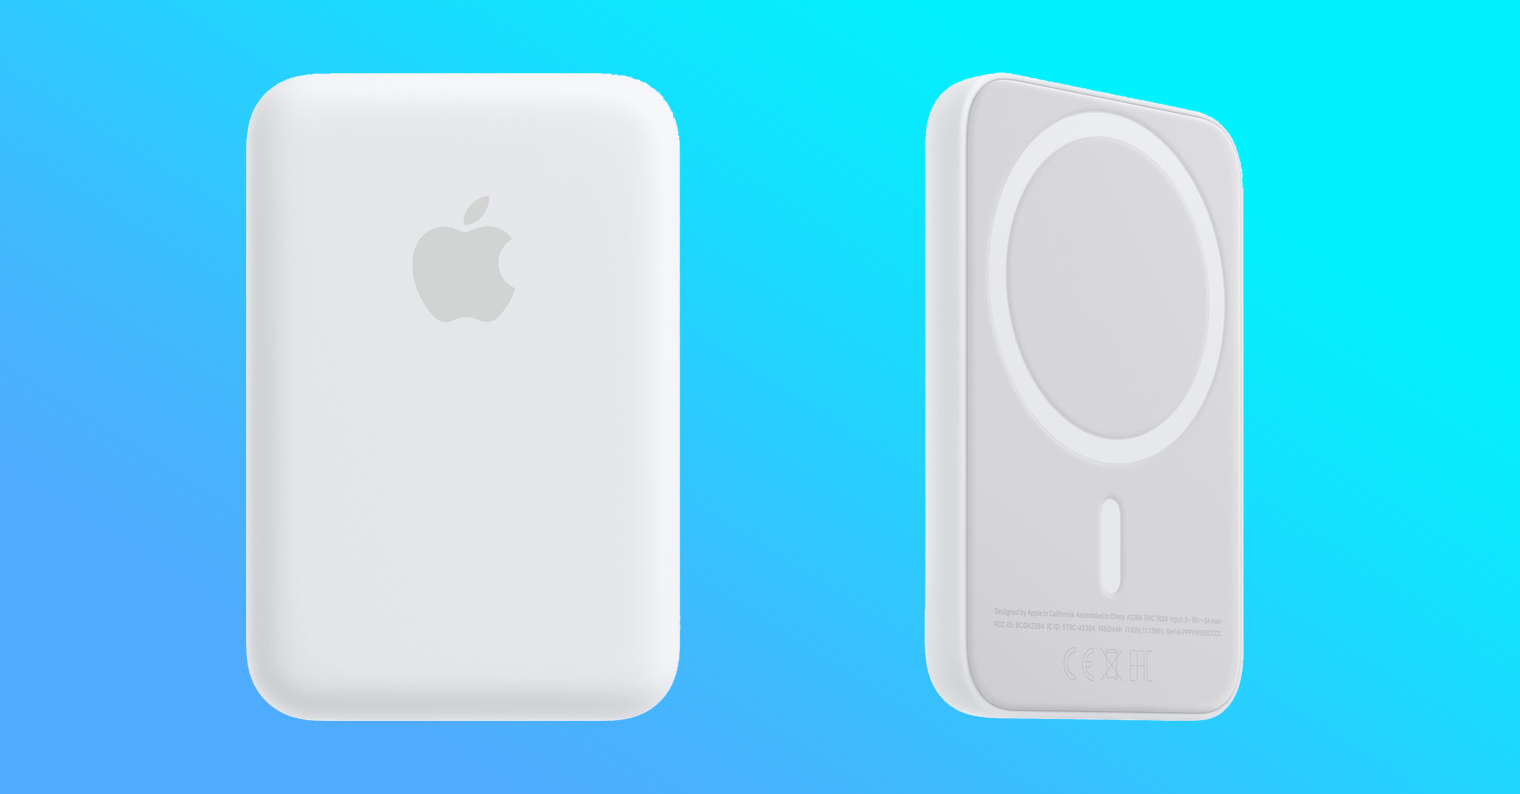 magsafe battery pack battery